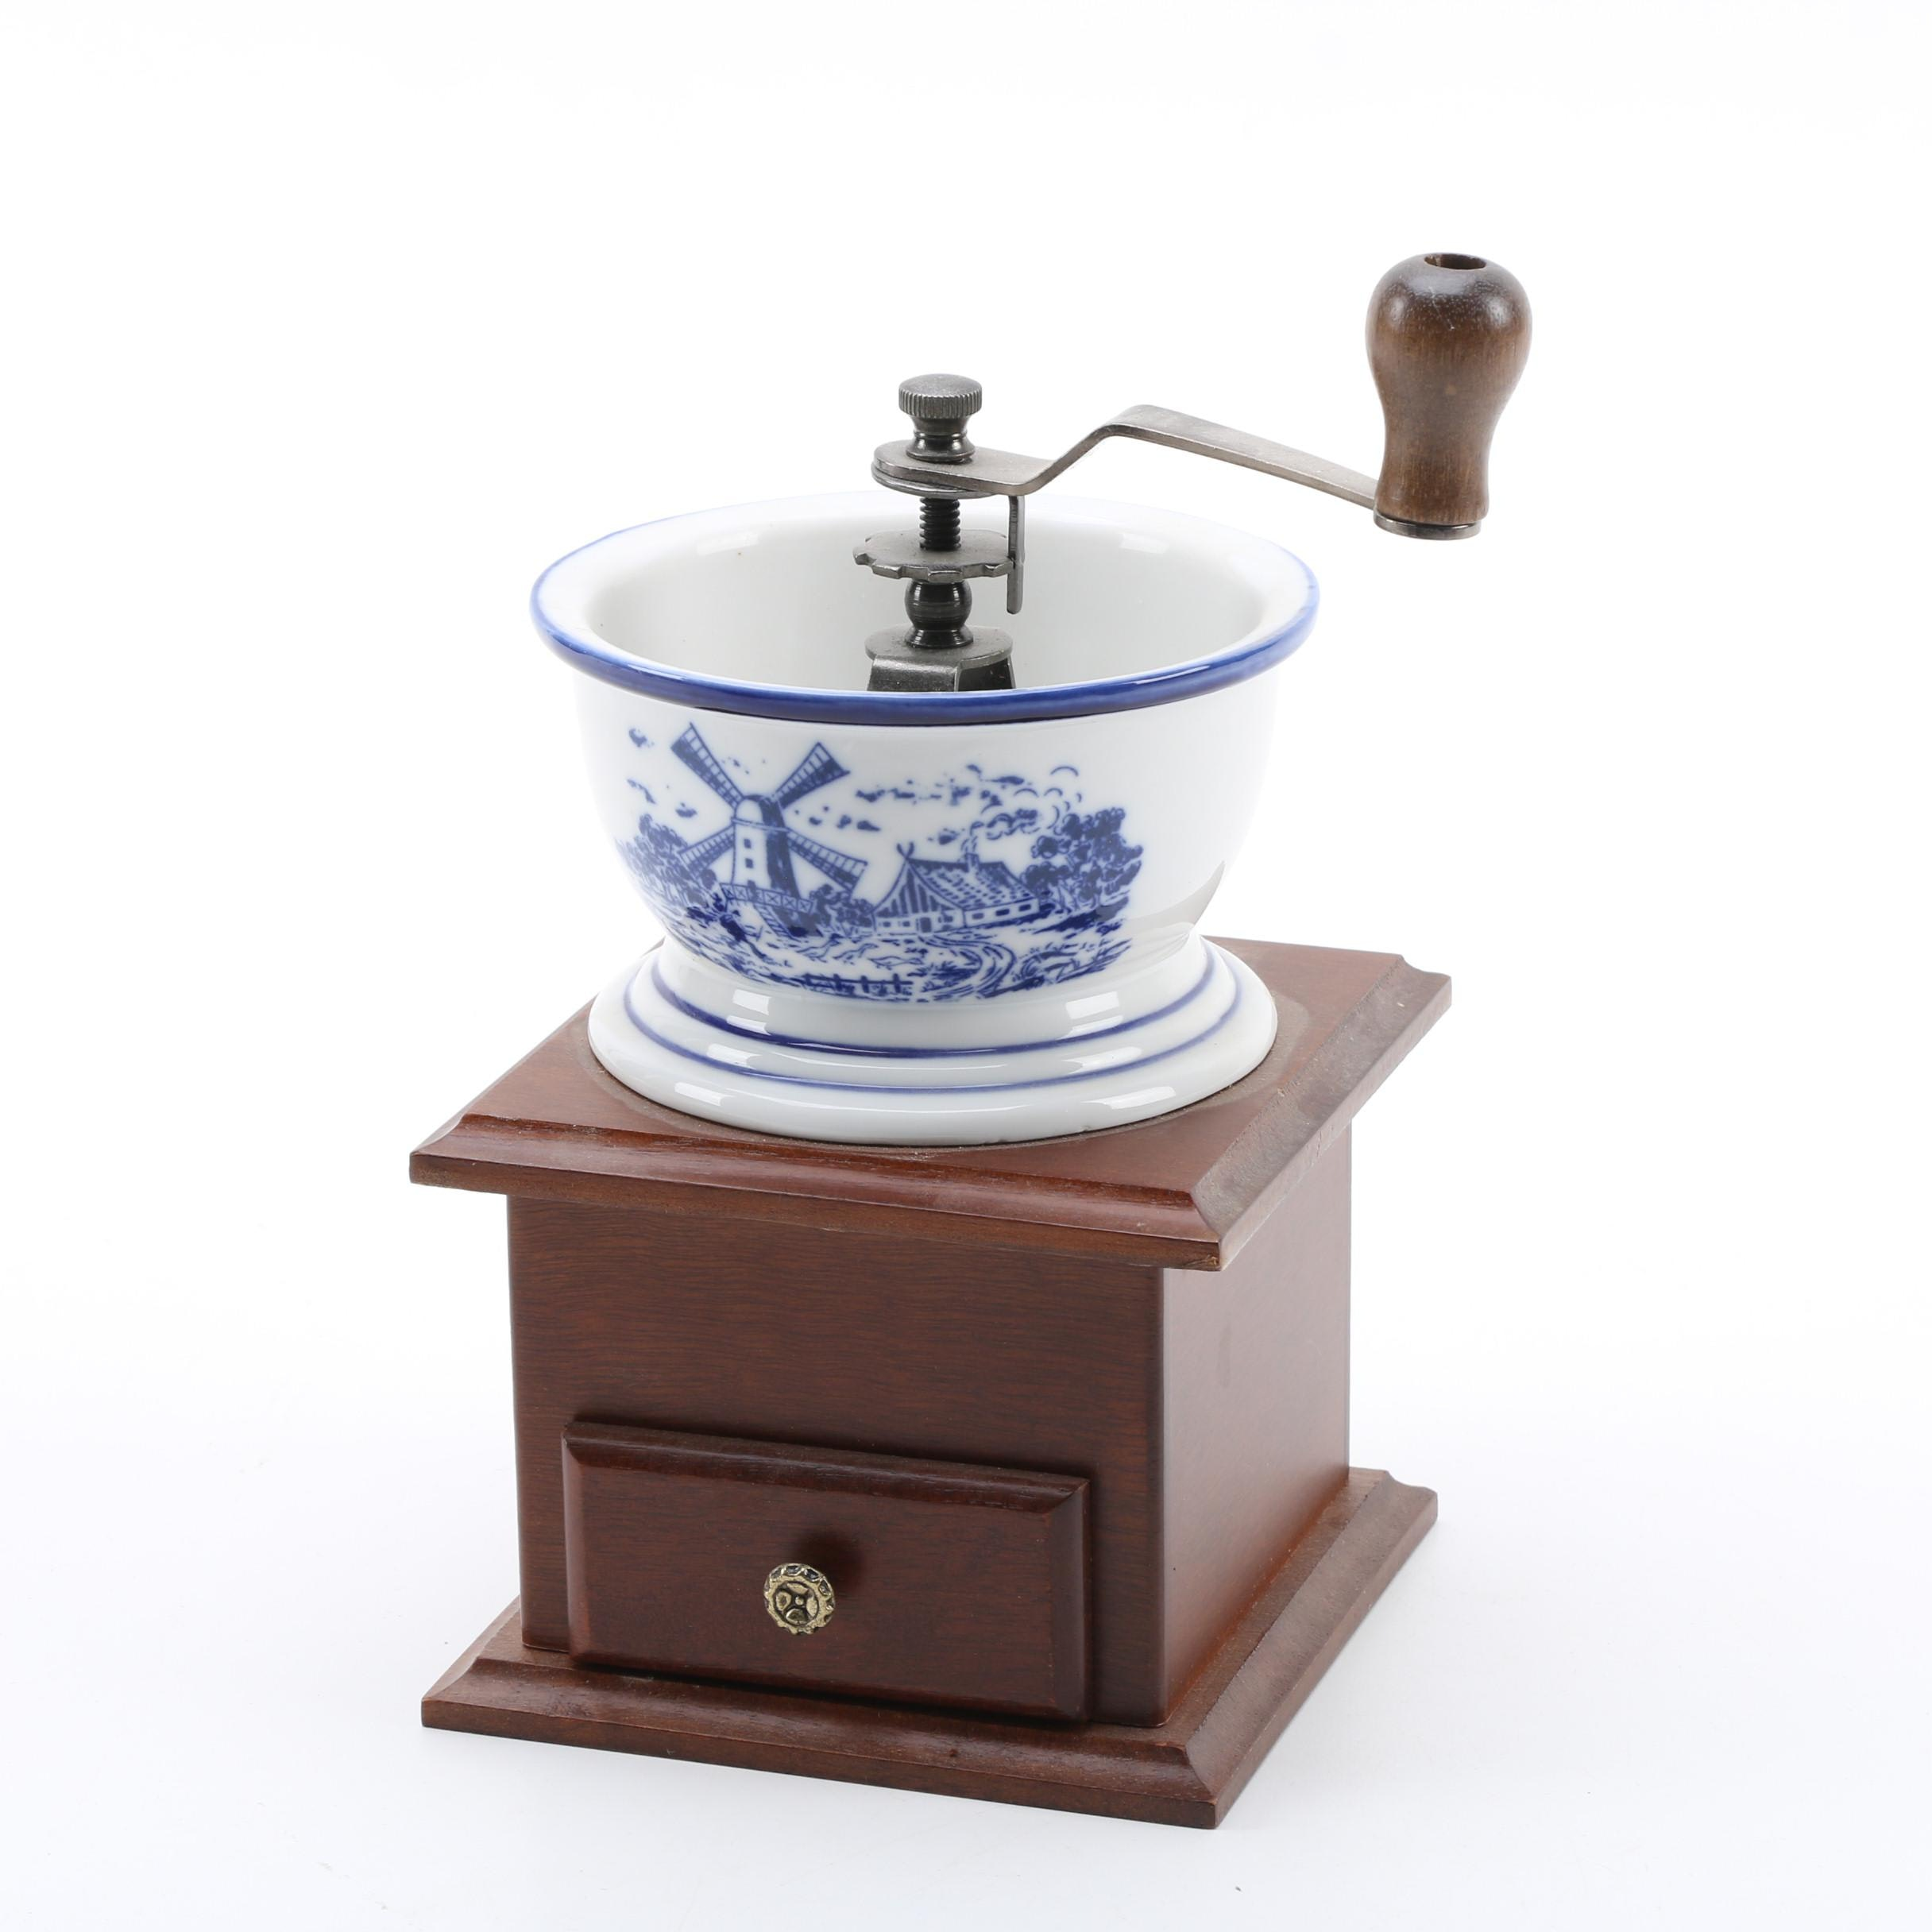 Blue and White Delft Style Top Coffee Grinder